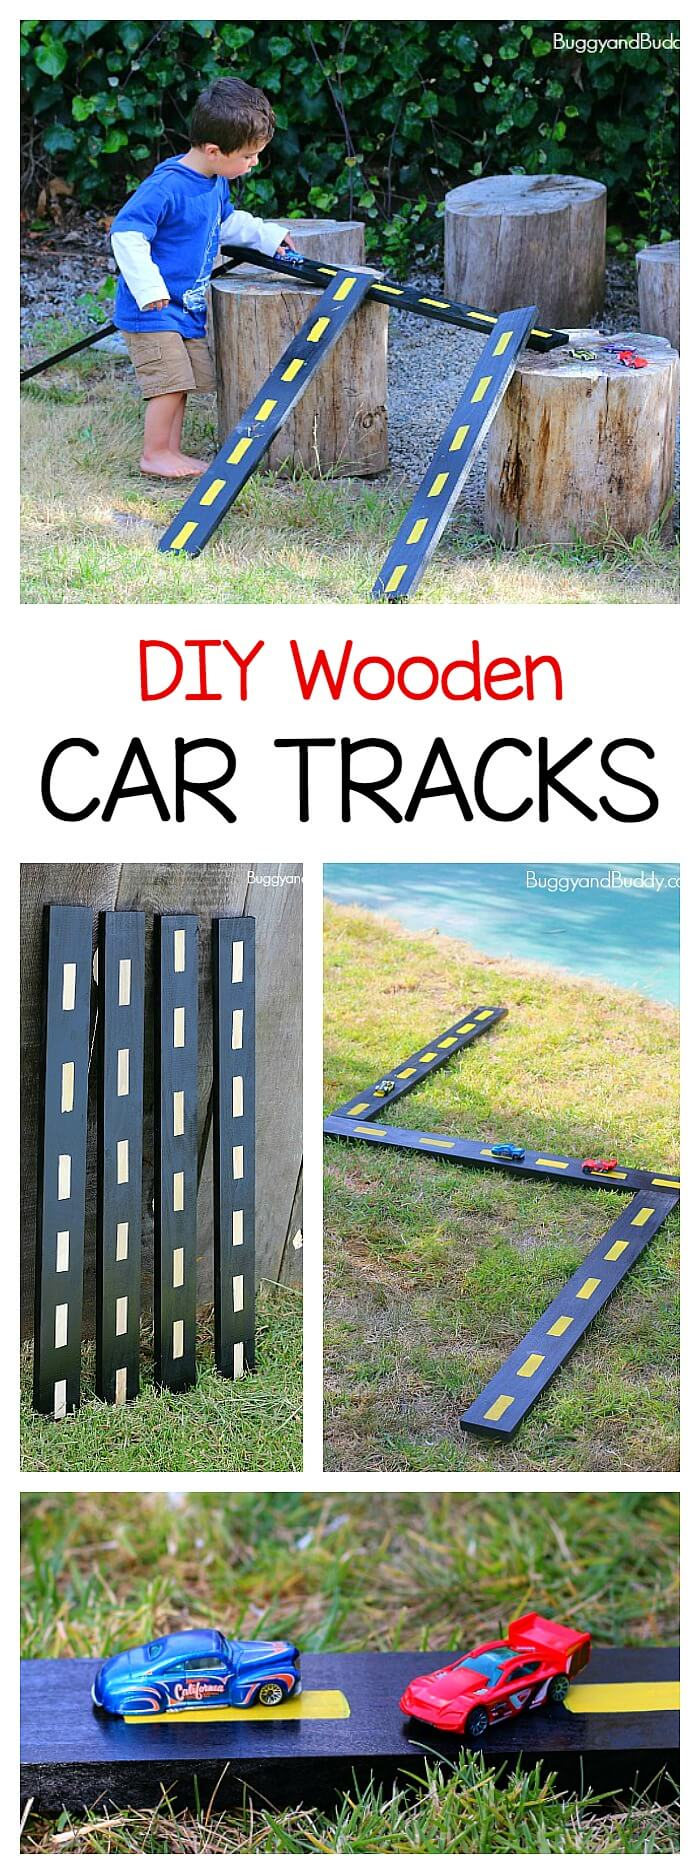 Sophisticated Obstacles Diy Backyard Ideas 2018 Backyard Party Decorations Diy Backyard Wedding Decorations Diy Designs Kids An Outdoor Race Track outdoor Backyard Decorations Diy